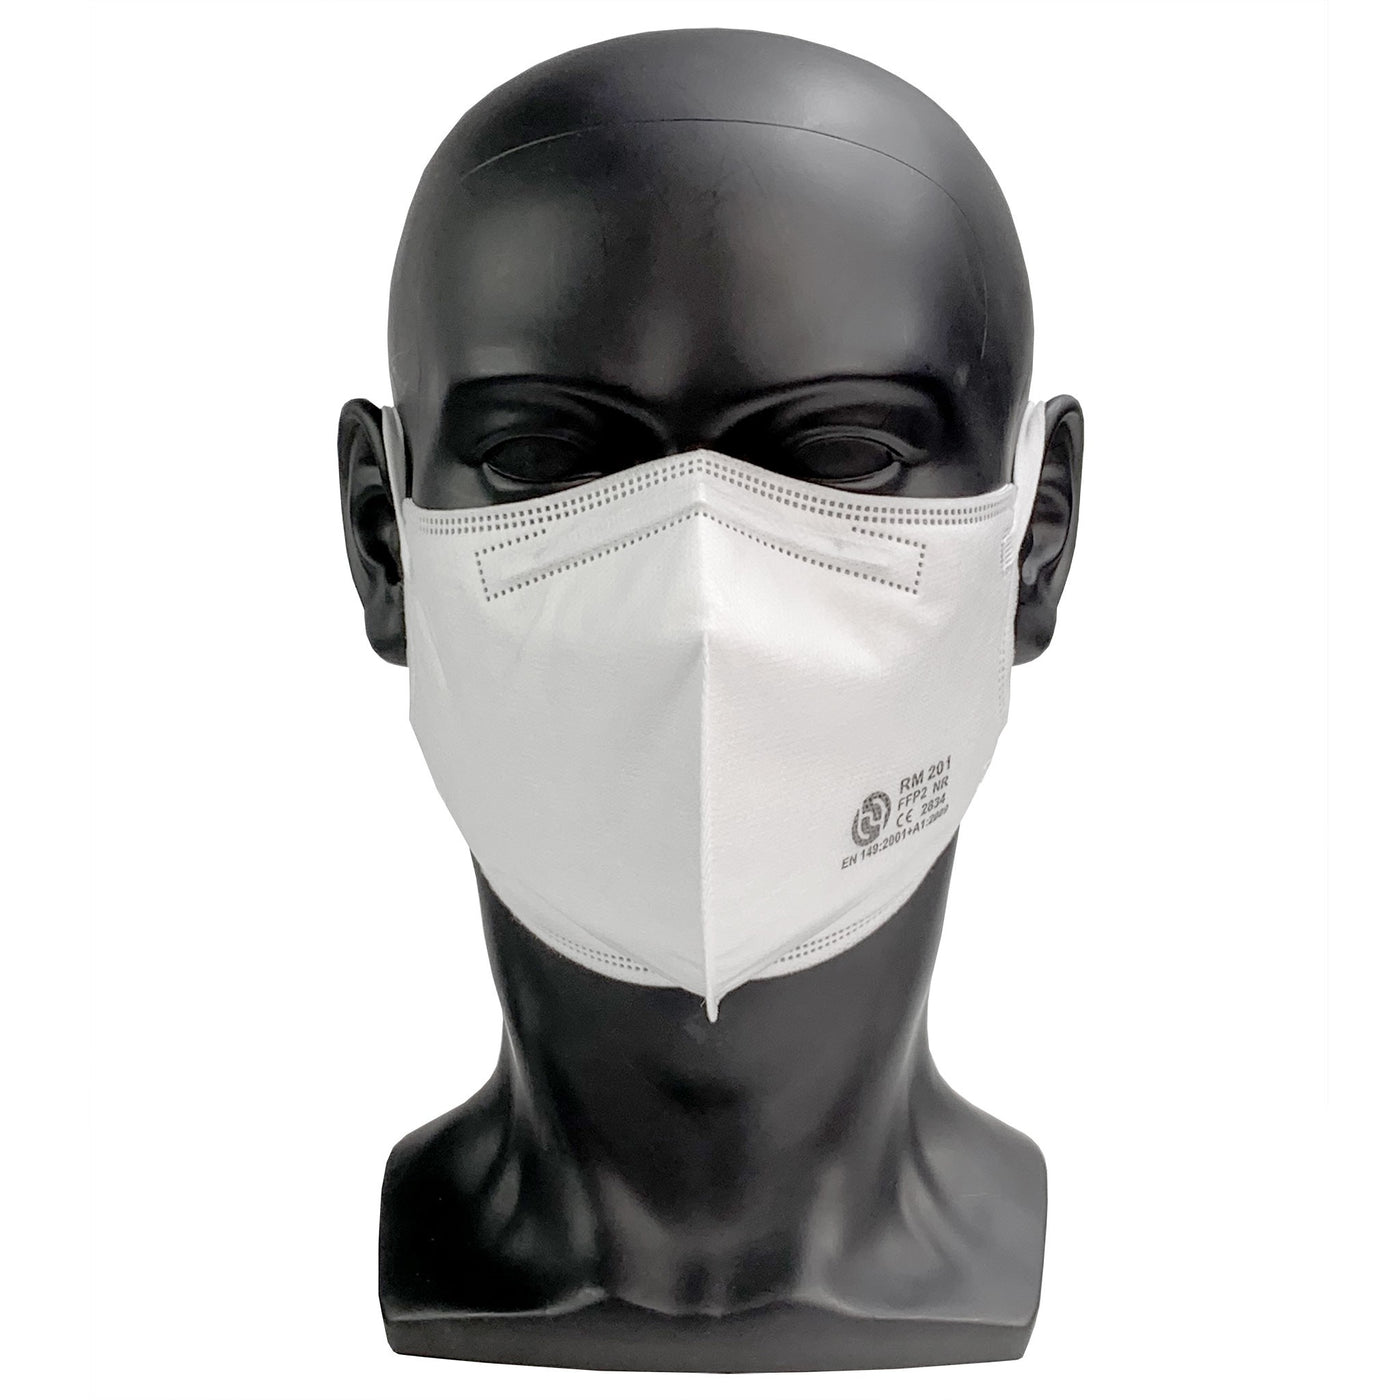 Fully certified PPE, available at CareMed